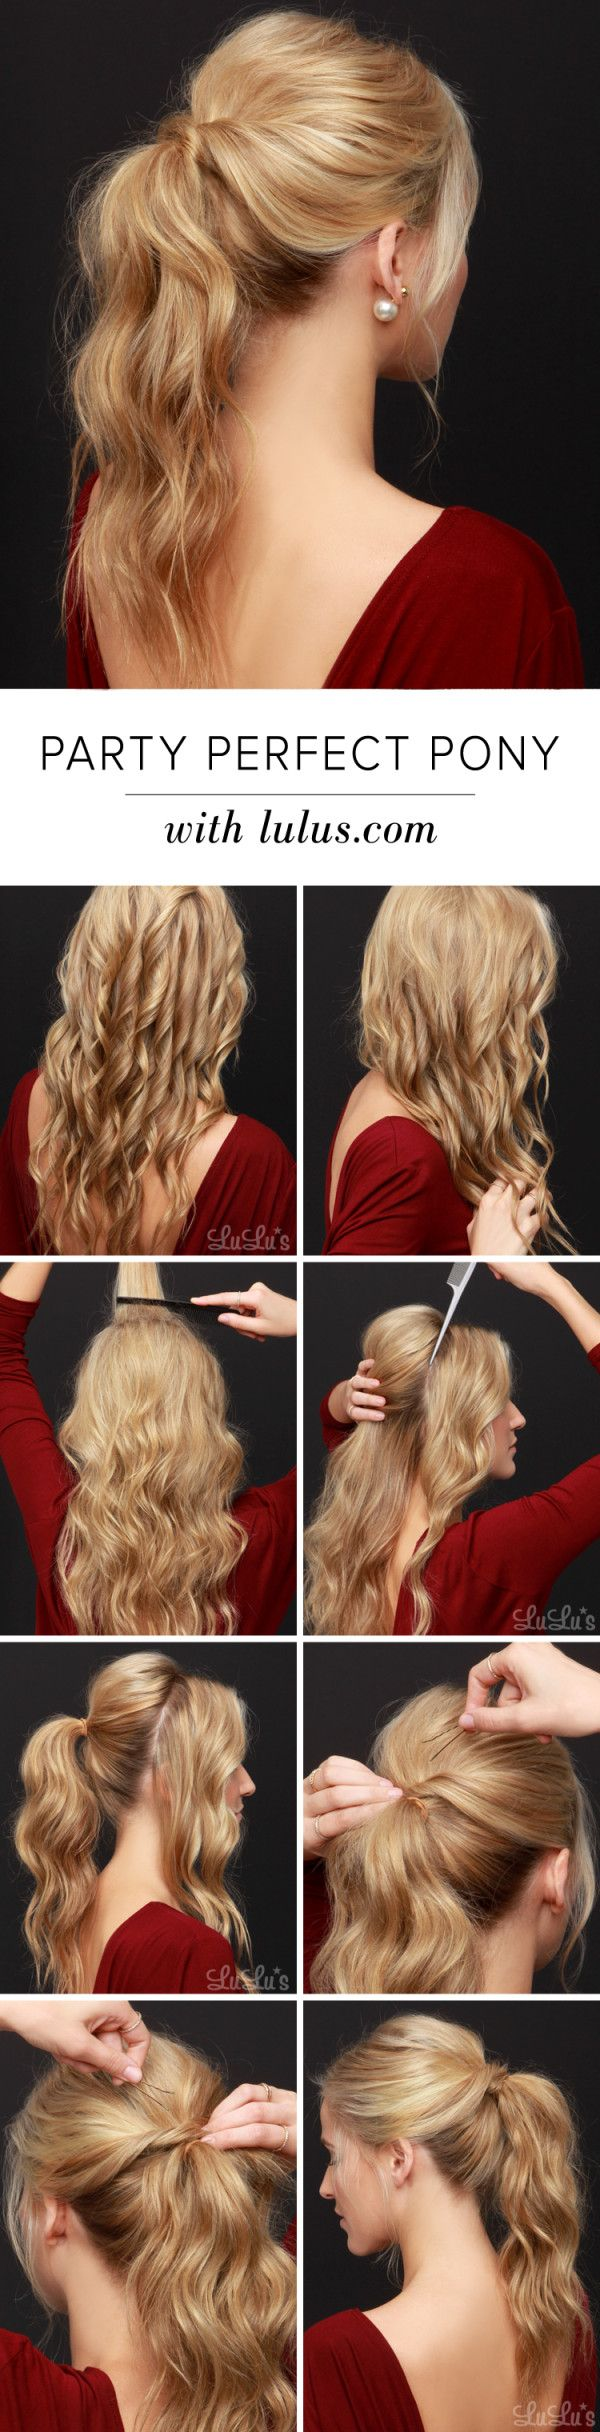 10 ABSOLUTELY AMAZING HAIRSTYLE TIPS AND IDEAS READY FOR ONLY A MINUTE - Just For Girls